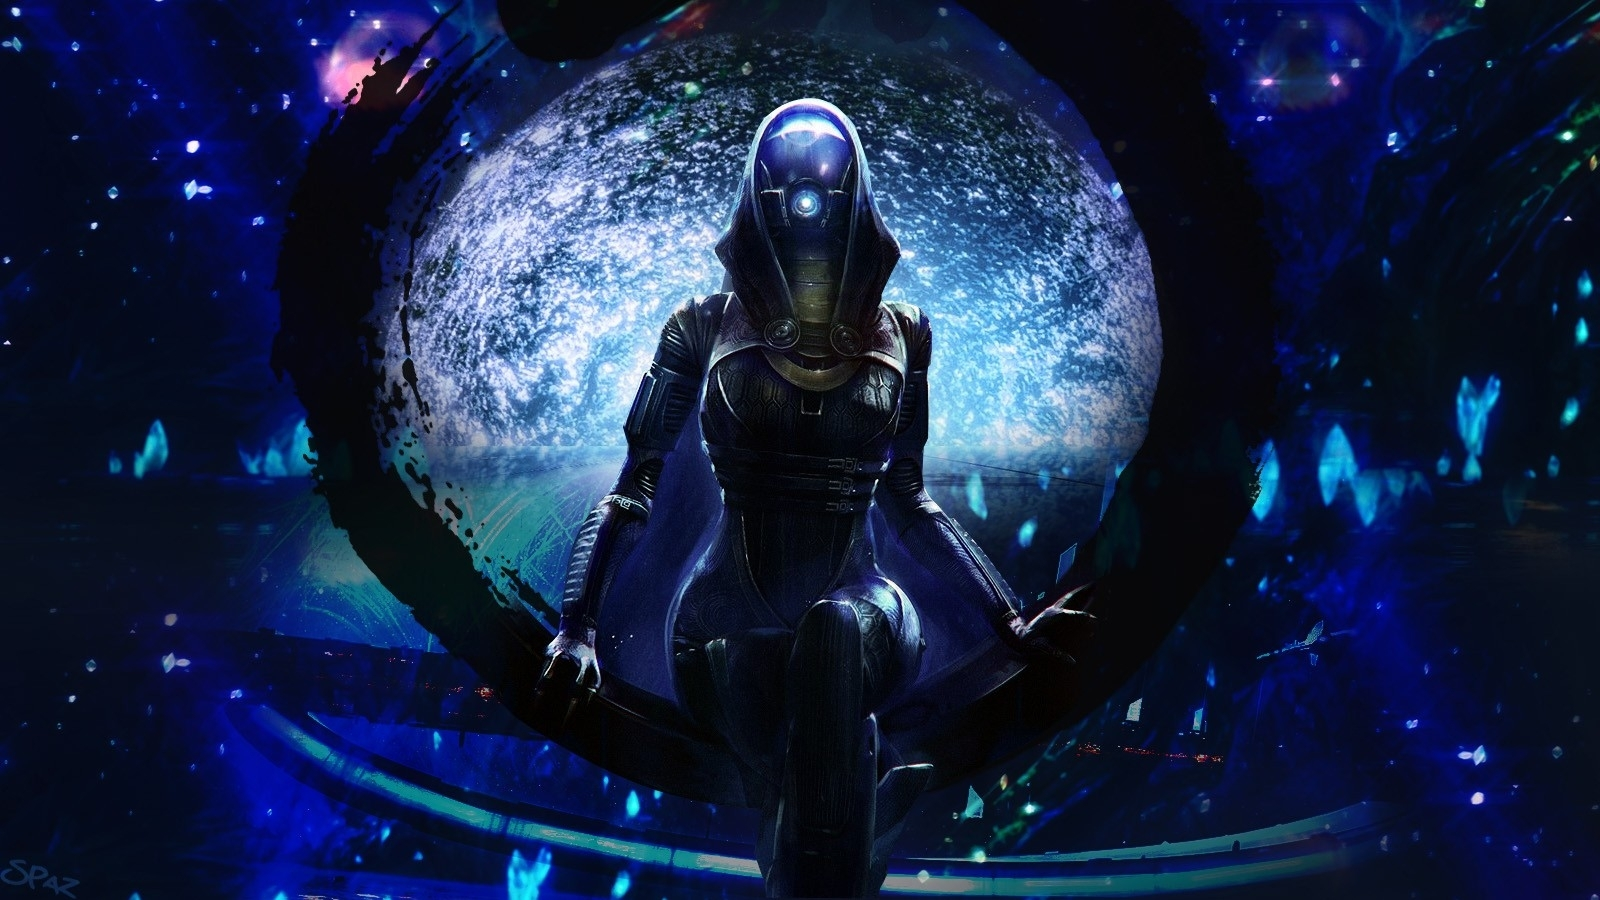 alien dark uniform suit space stars window blue chair mask wallpaper 1600x900